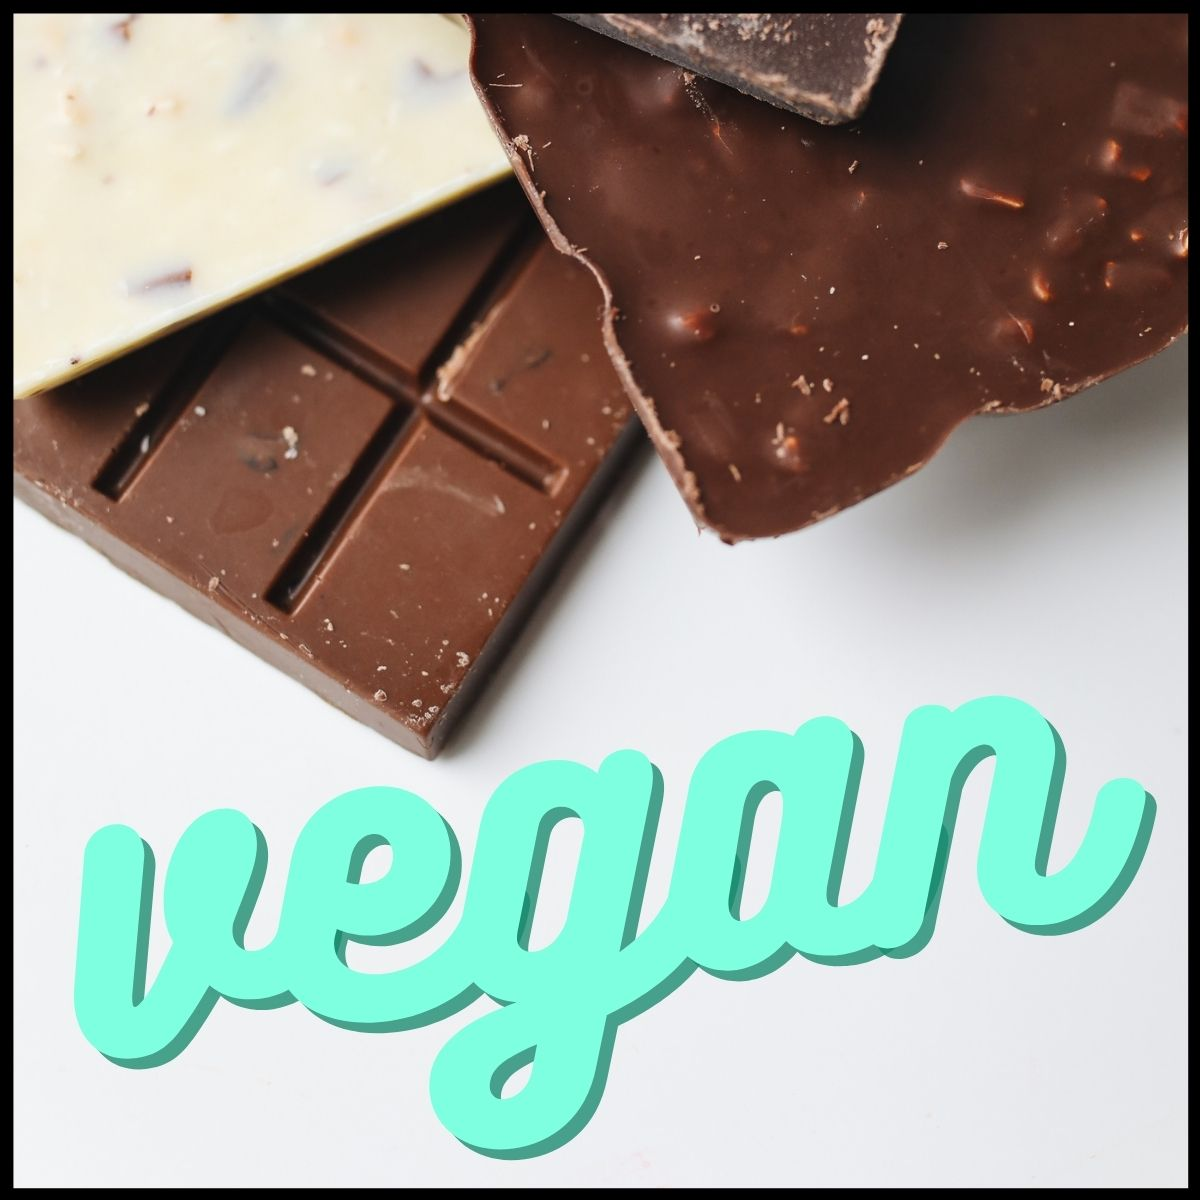 vegan chocolate - brands, where to buy